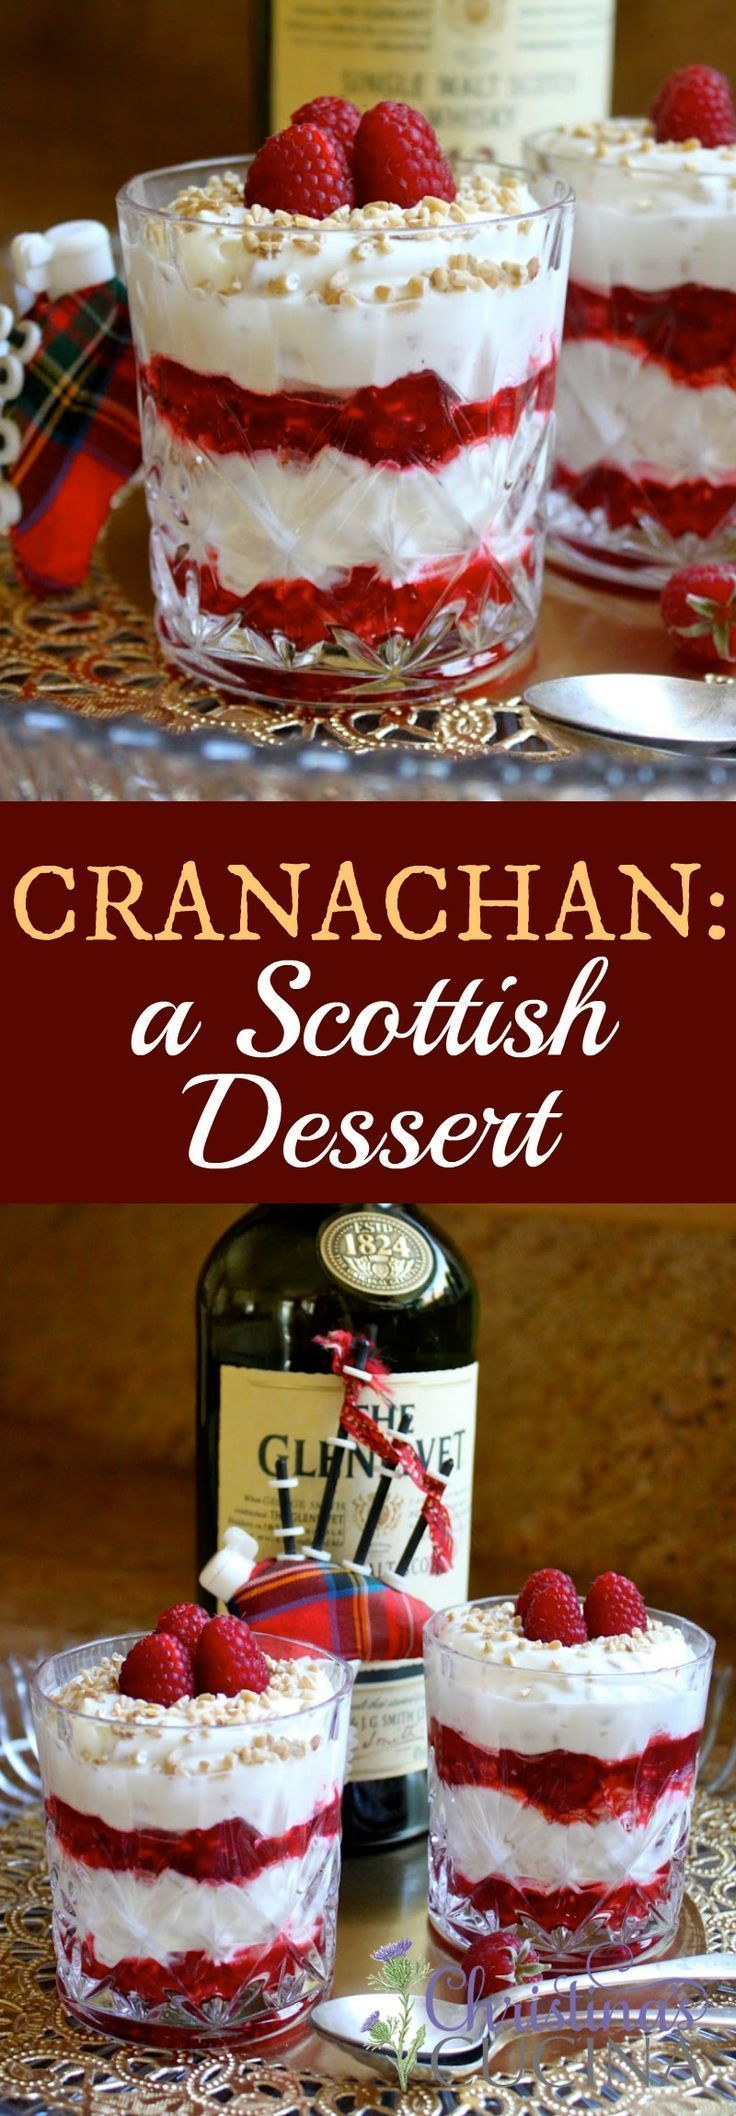 Lovely Scottish Dessert (recipe for US kitchens)A Lovely Scottish Dessert (recipe for US kitchens)